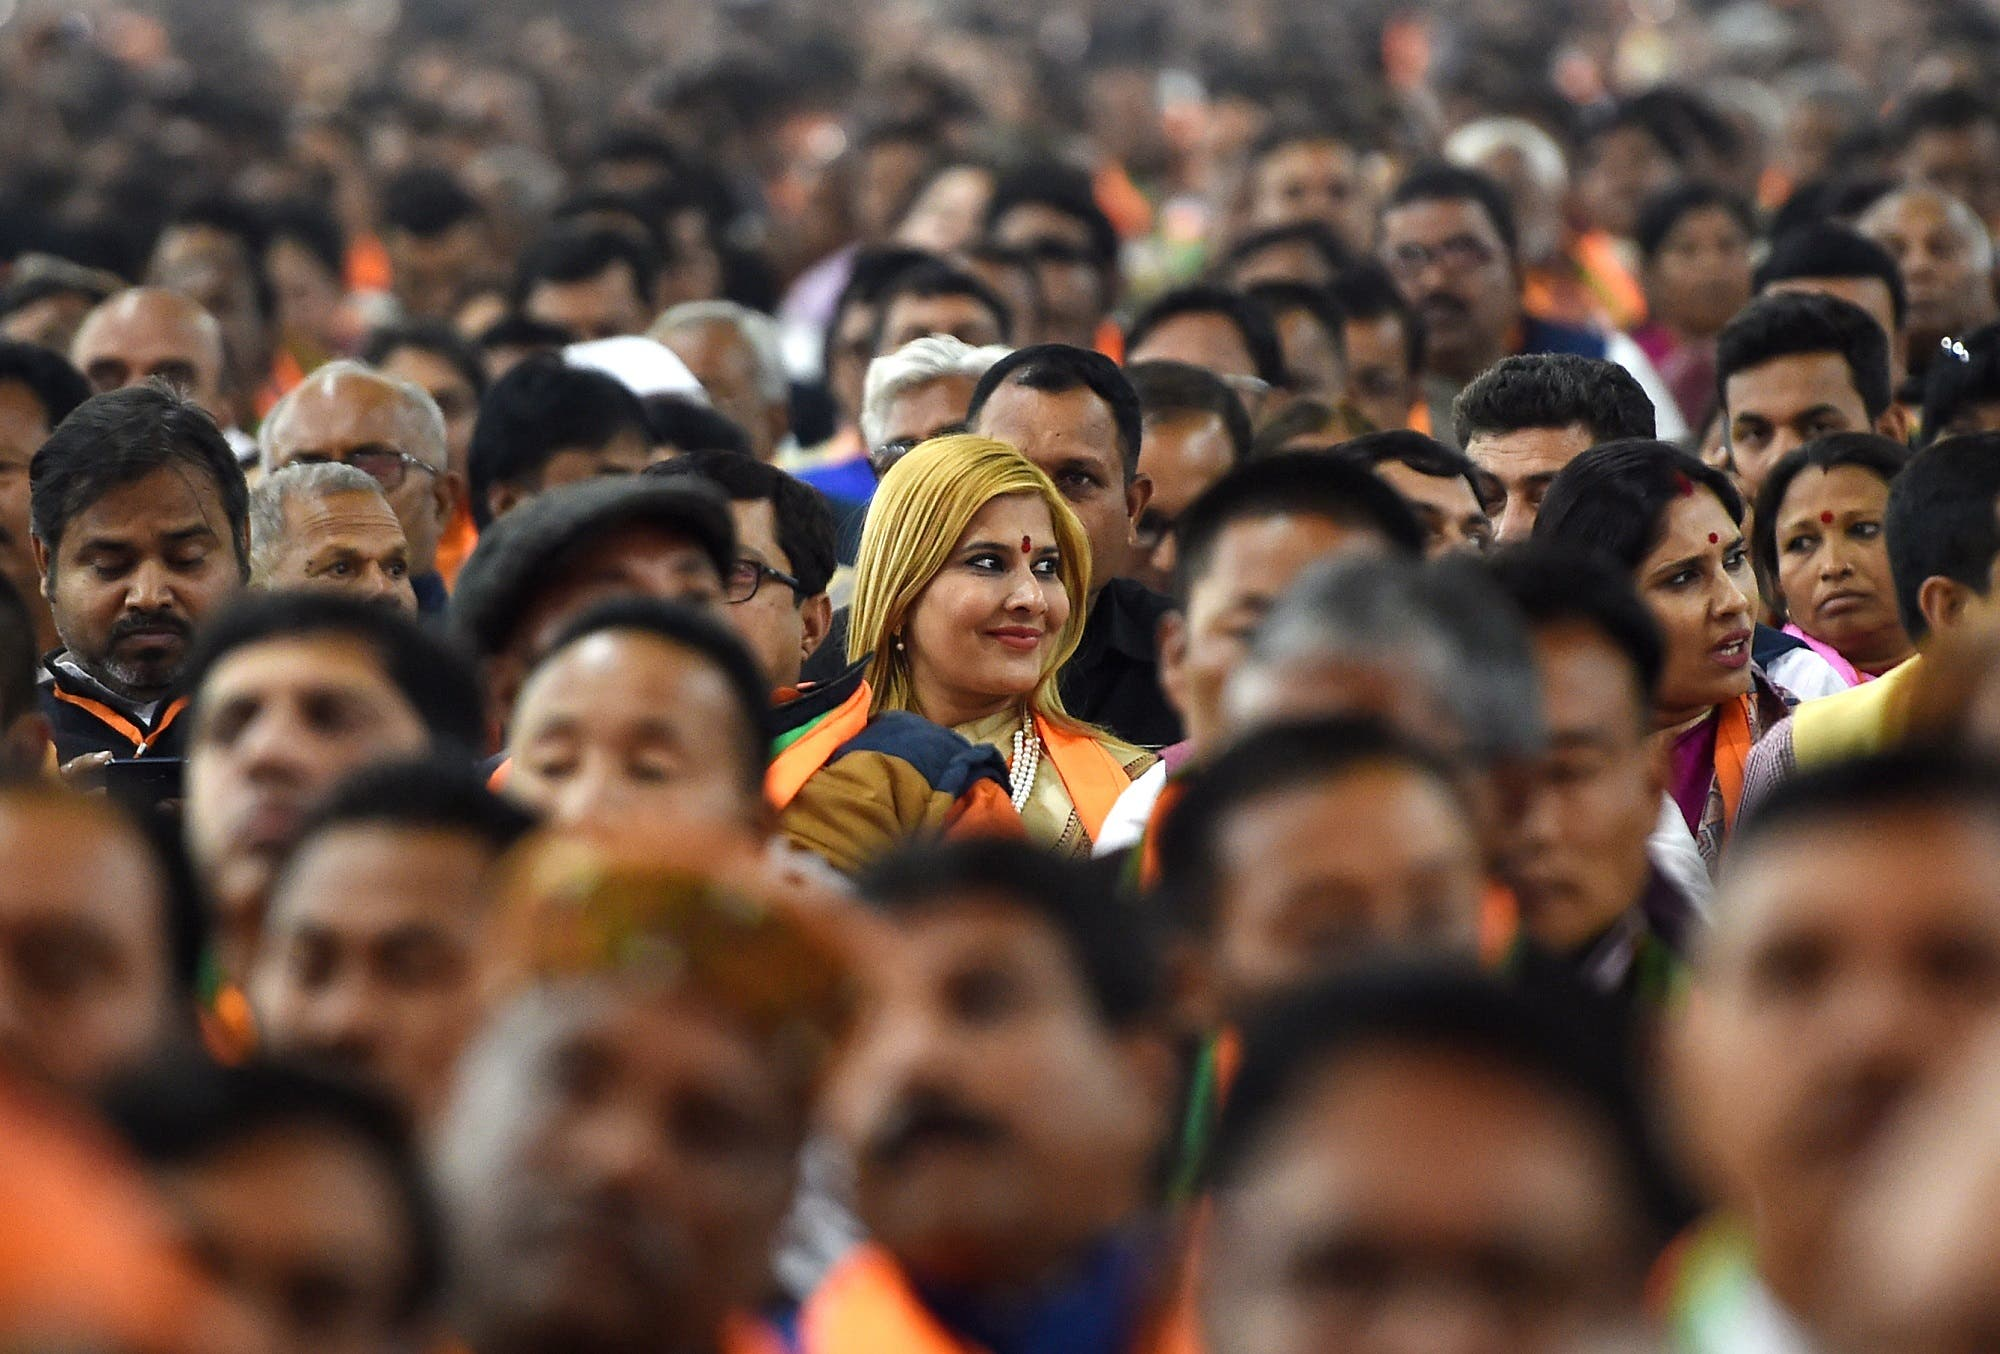 Supporters of Narendra Modi's BJP gather on the first day of the party's national convention in New Delhi on January 11, 2019. (AFP)